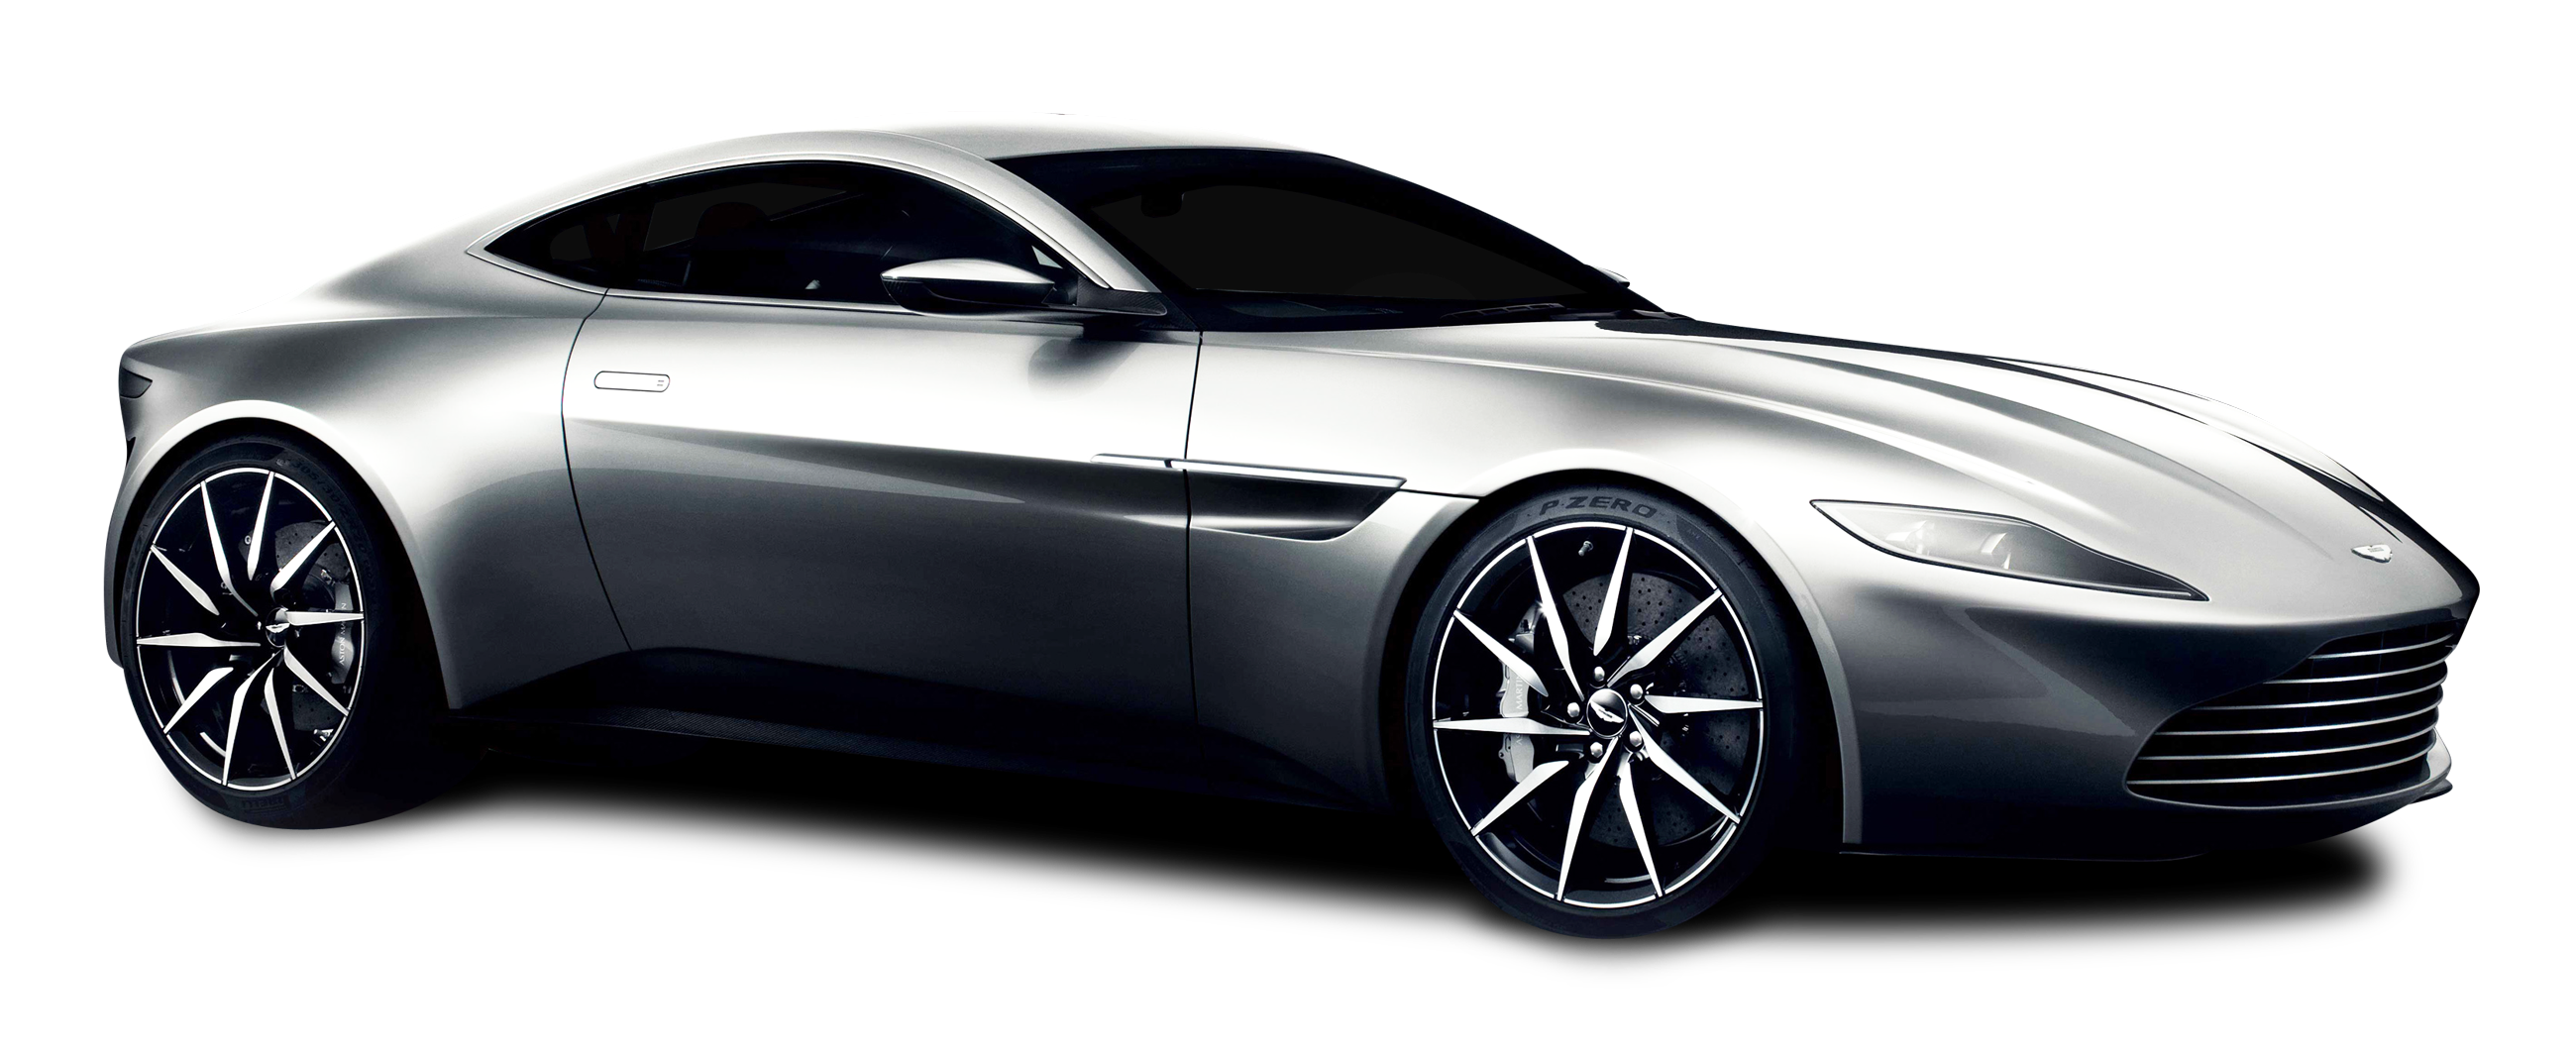 aston martin db10 silver car png image pngpix. Black Bedroom Furniture Sets. Home Design Ideas